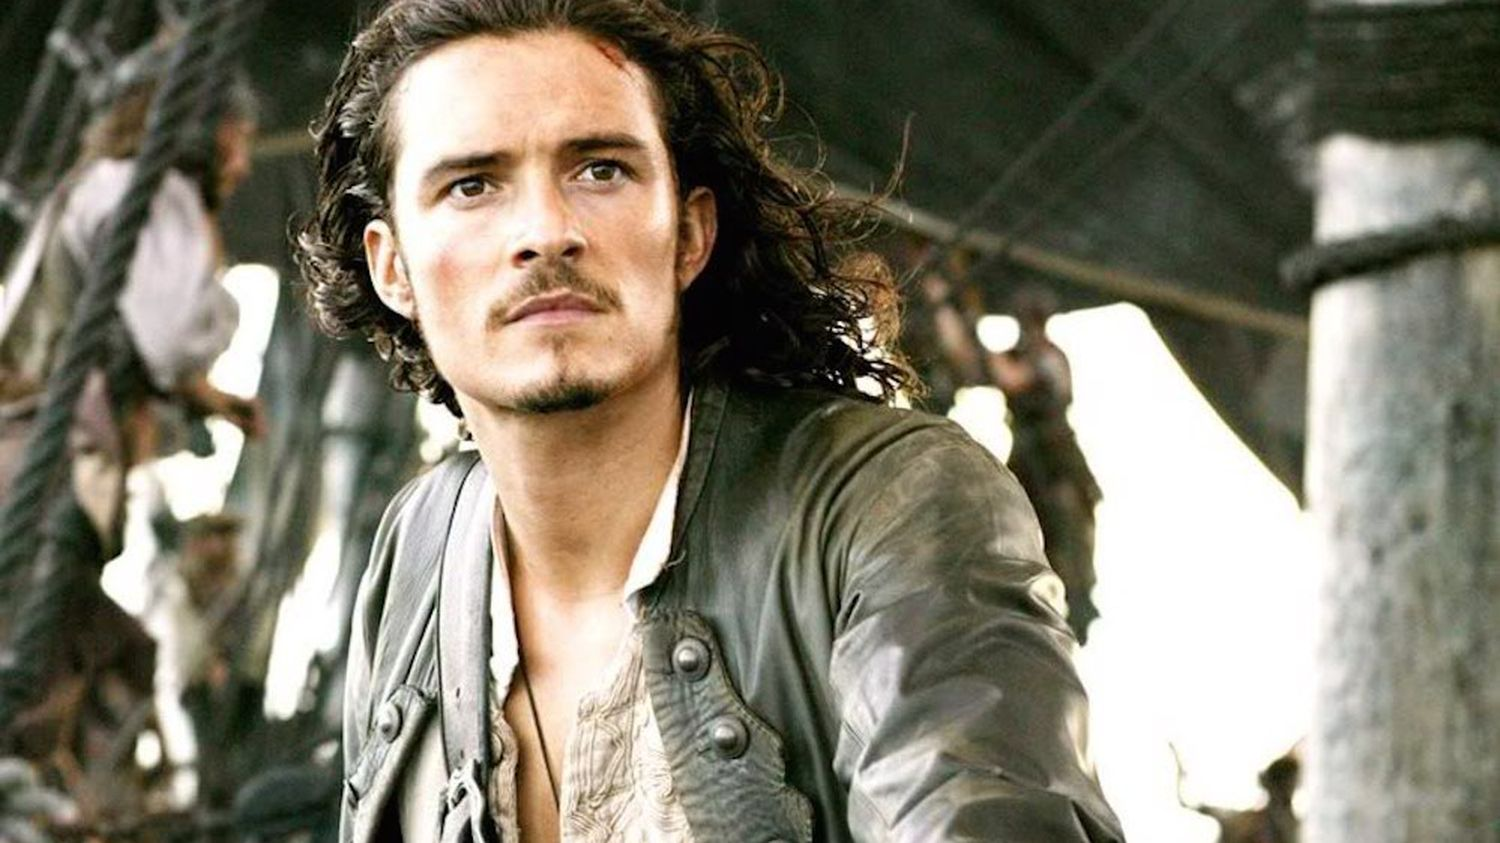 Orlando Bloom Facts